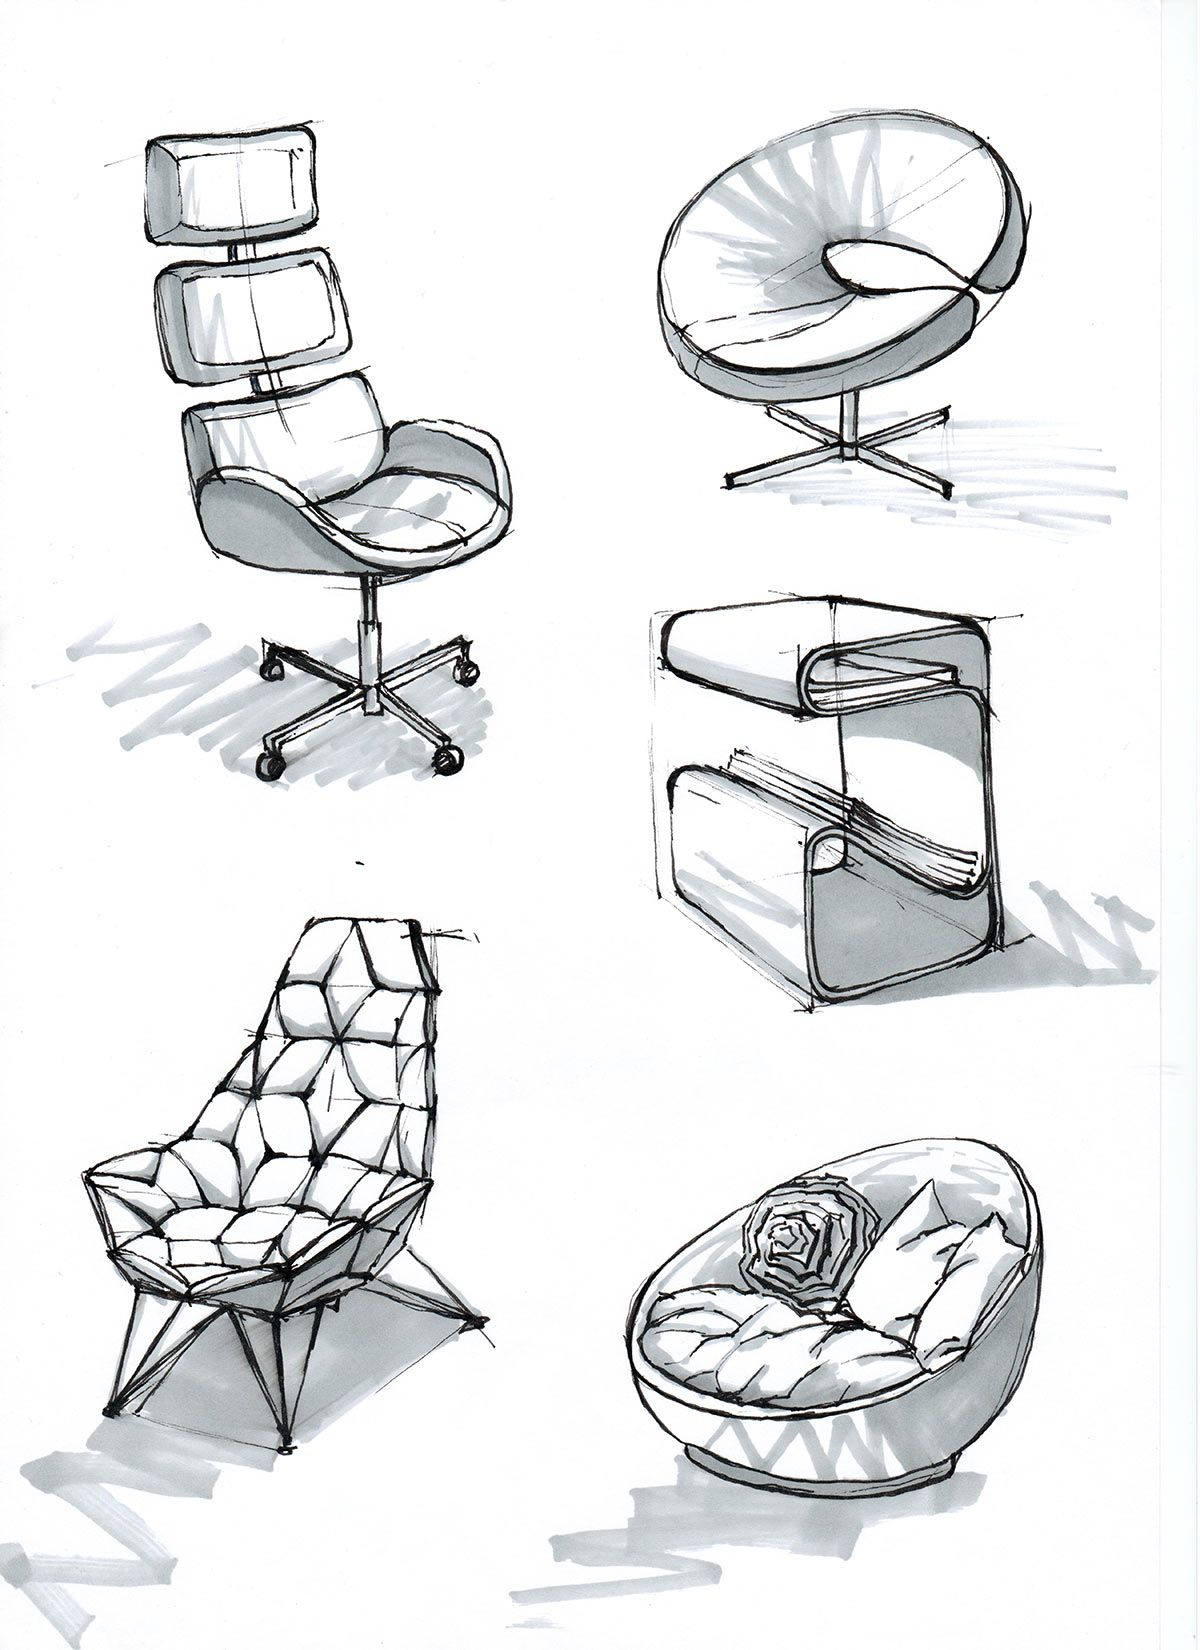 chair design portfolio slip covers for office chairs interior sketch pinterest sketches